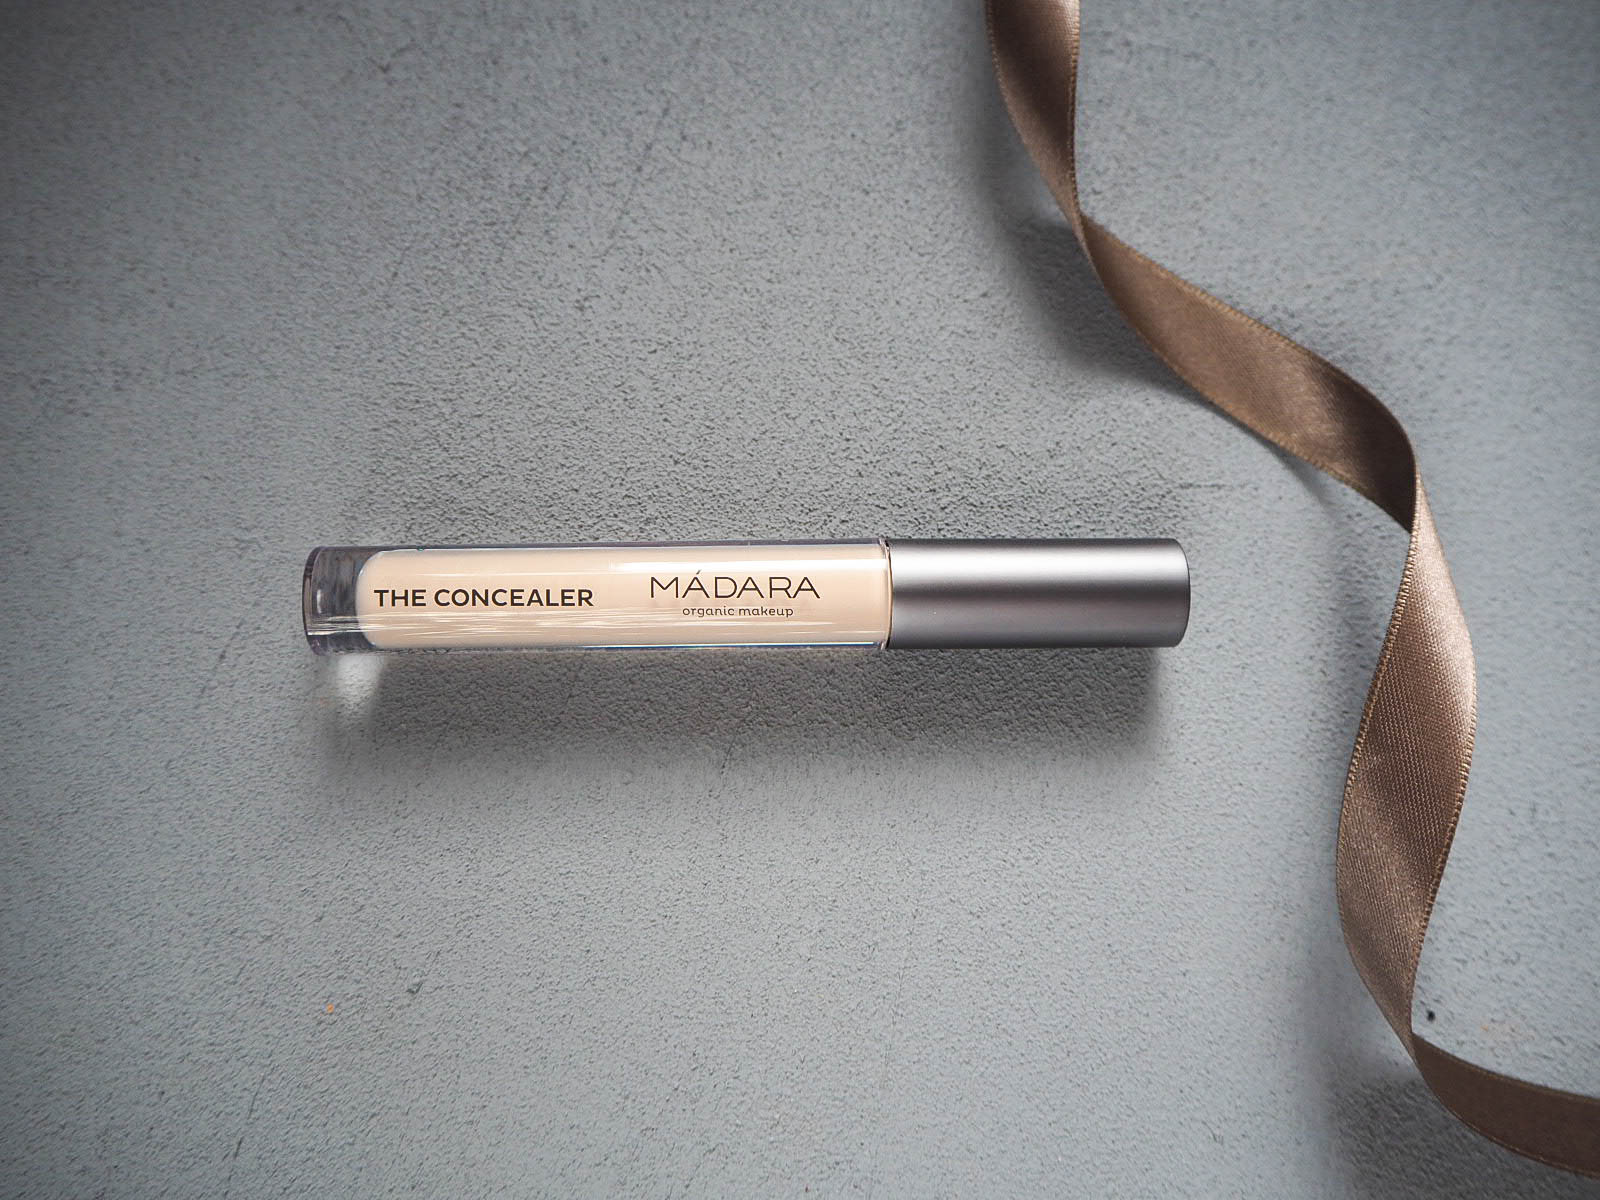 The Concealer Madara Review